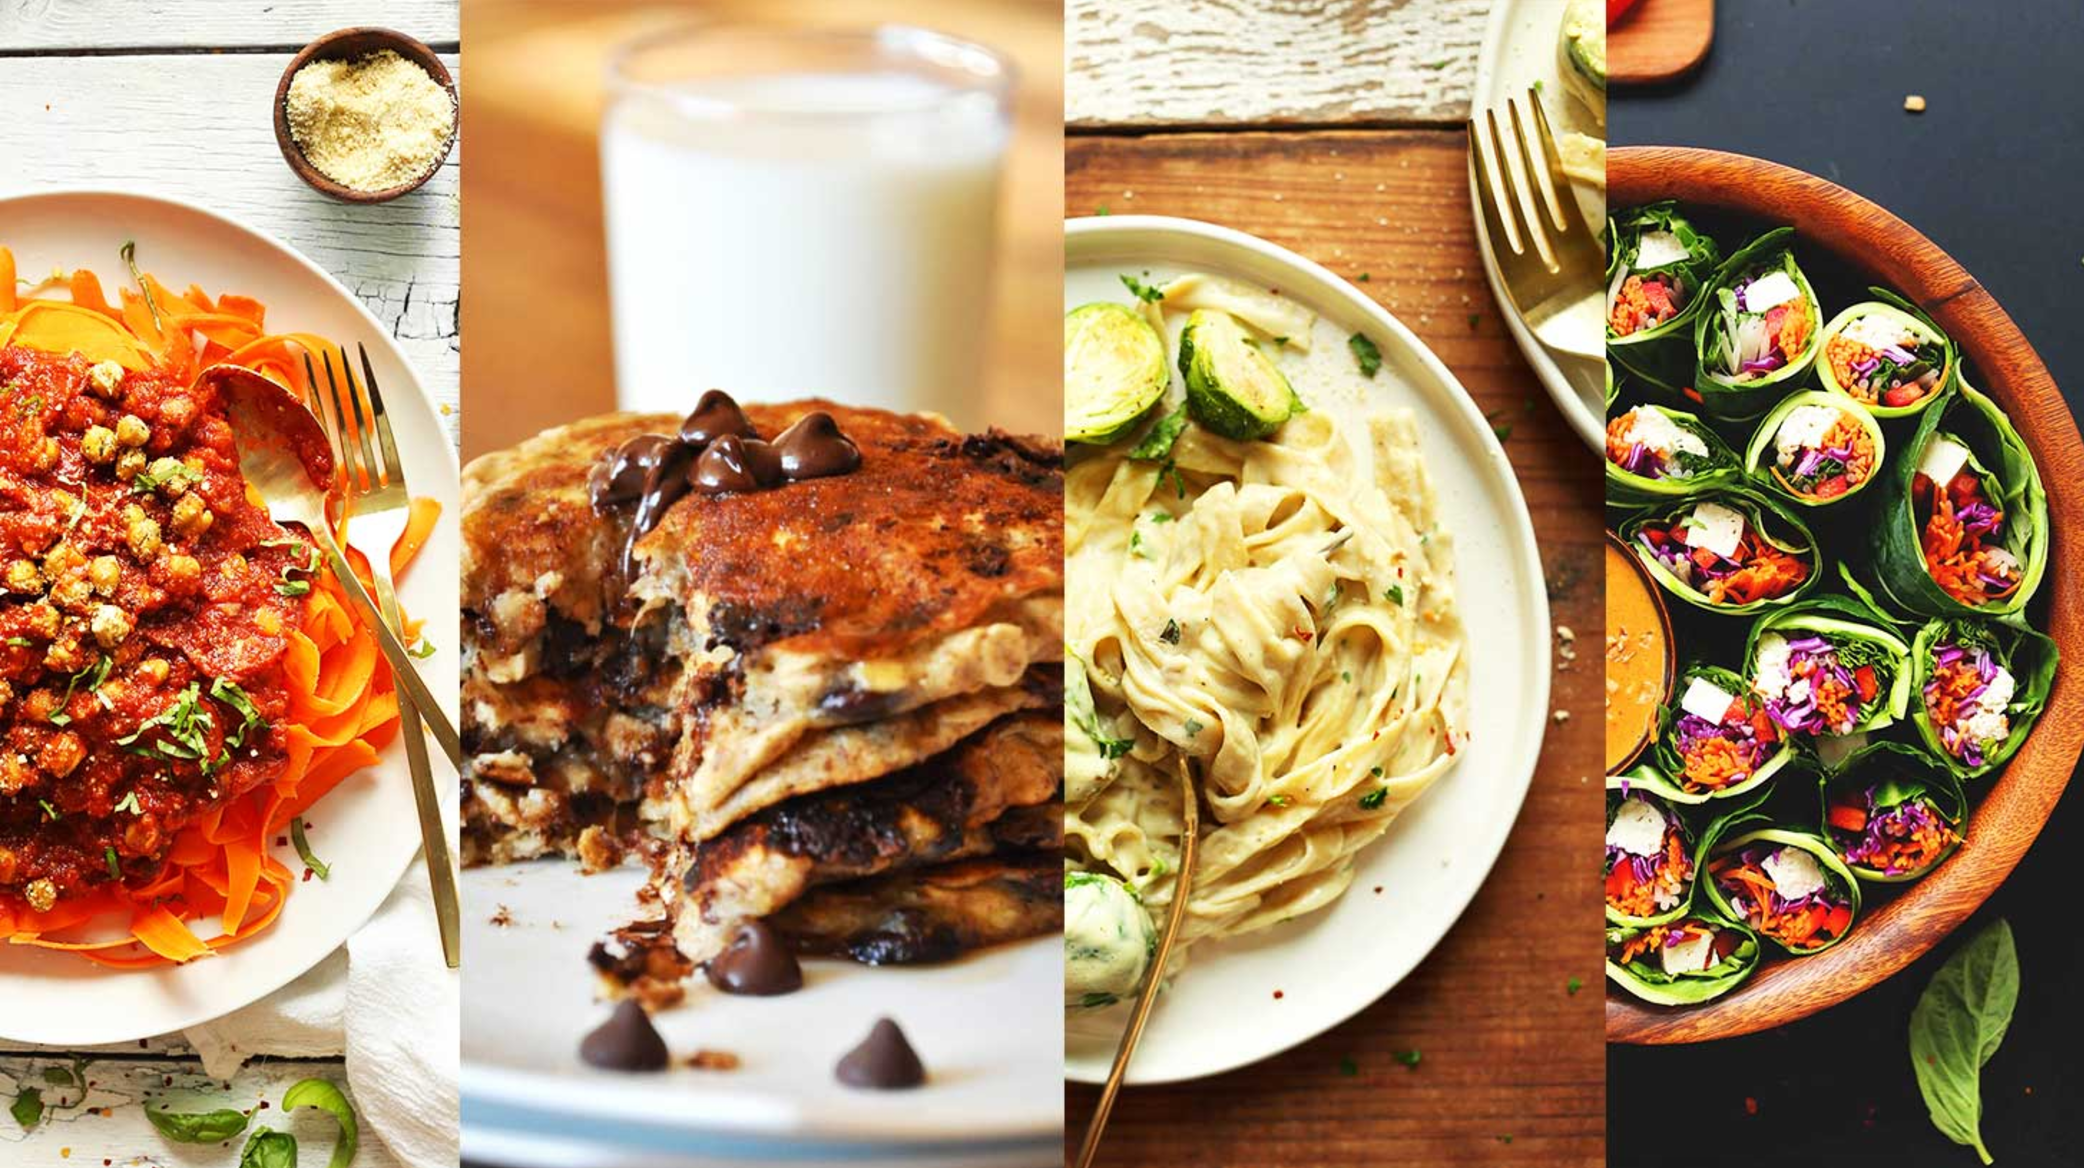 All plant-based vegan recipes, mostly gluten free (all delicious).